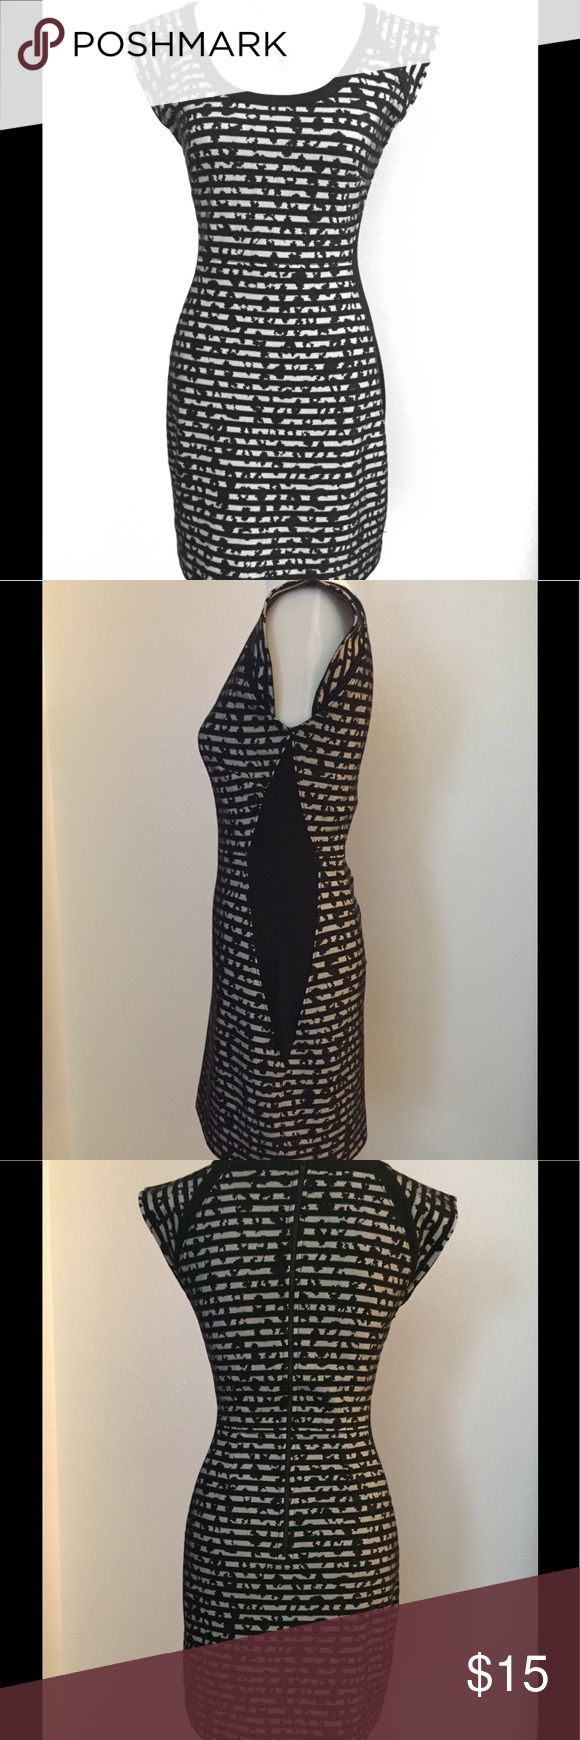 Size 6 French Connection black and white dress Size 6 French Connection black and white bodycon dress, is gently used, no signs of wear. A little over 31 inches long. It is so flattering and well made. The material is thick cotton spandex knit ,black and white stripe pattern with a patterned black mesh sewn to the material. Sides have a black panel which is very slimming. French Connection Dresses Mini